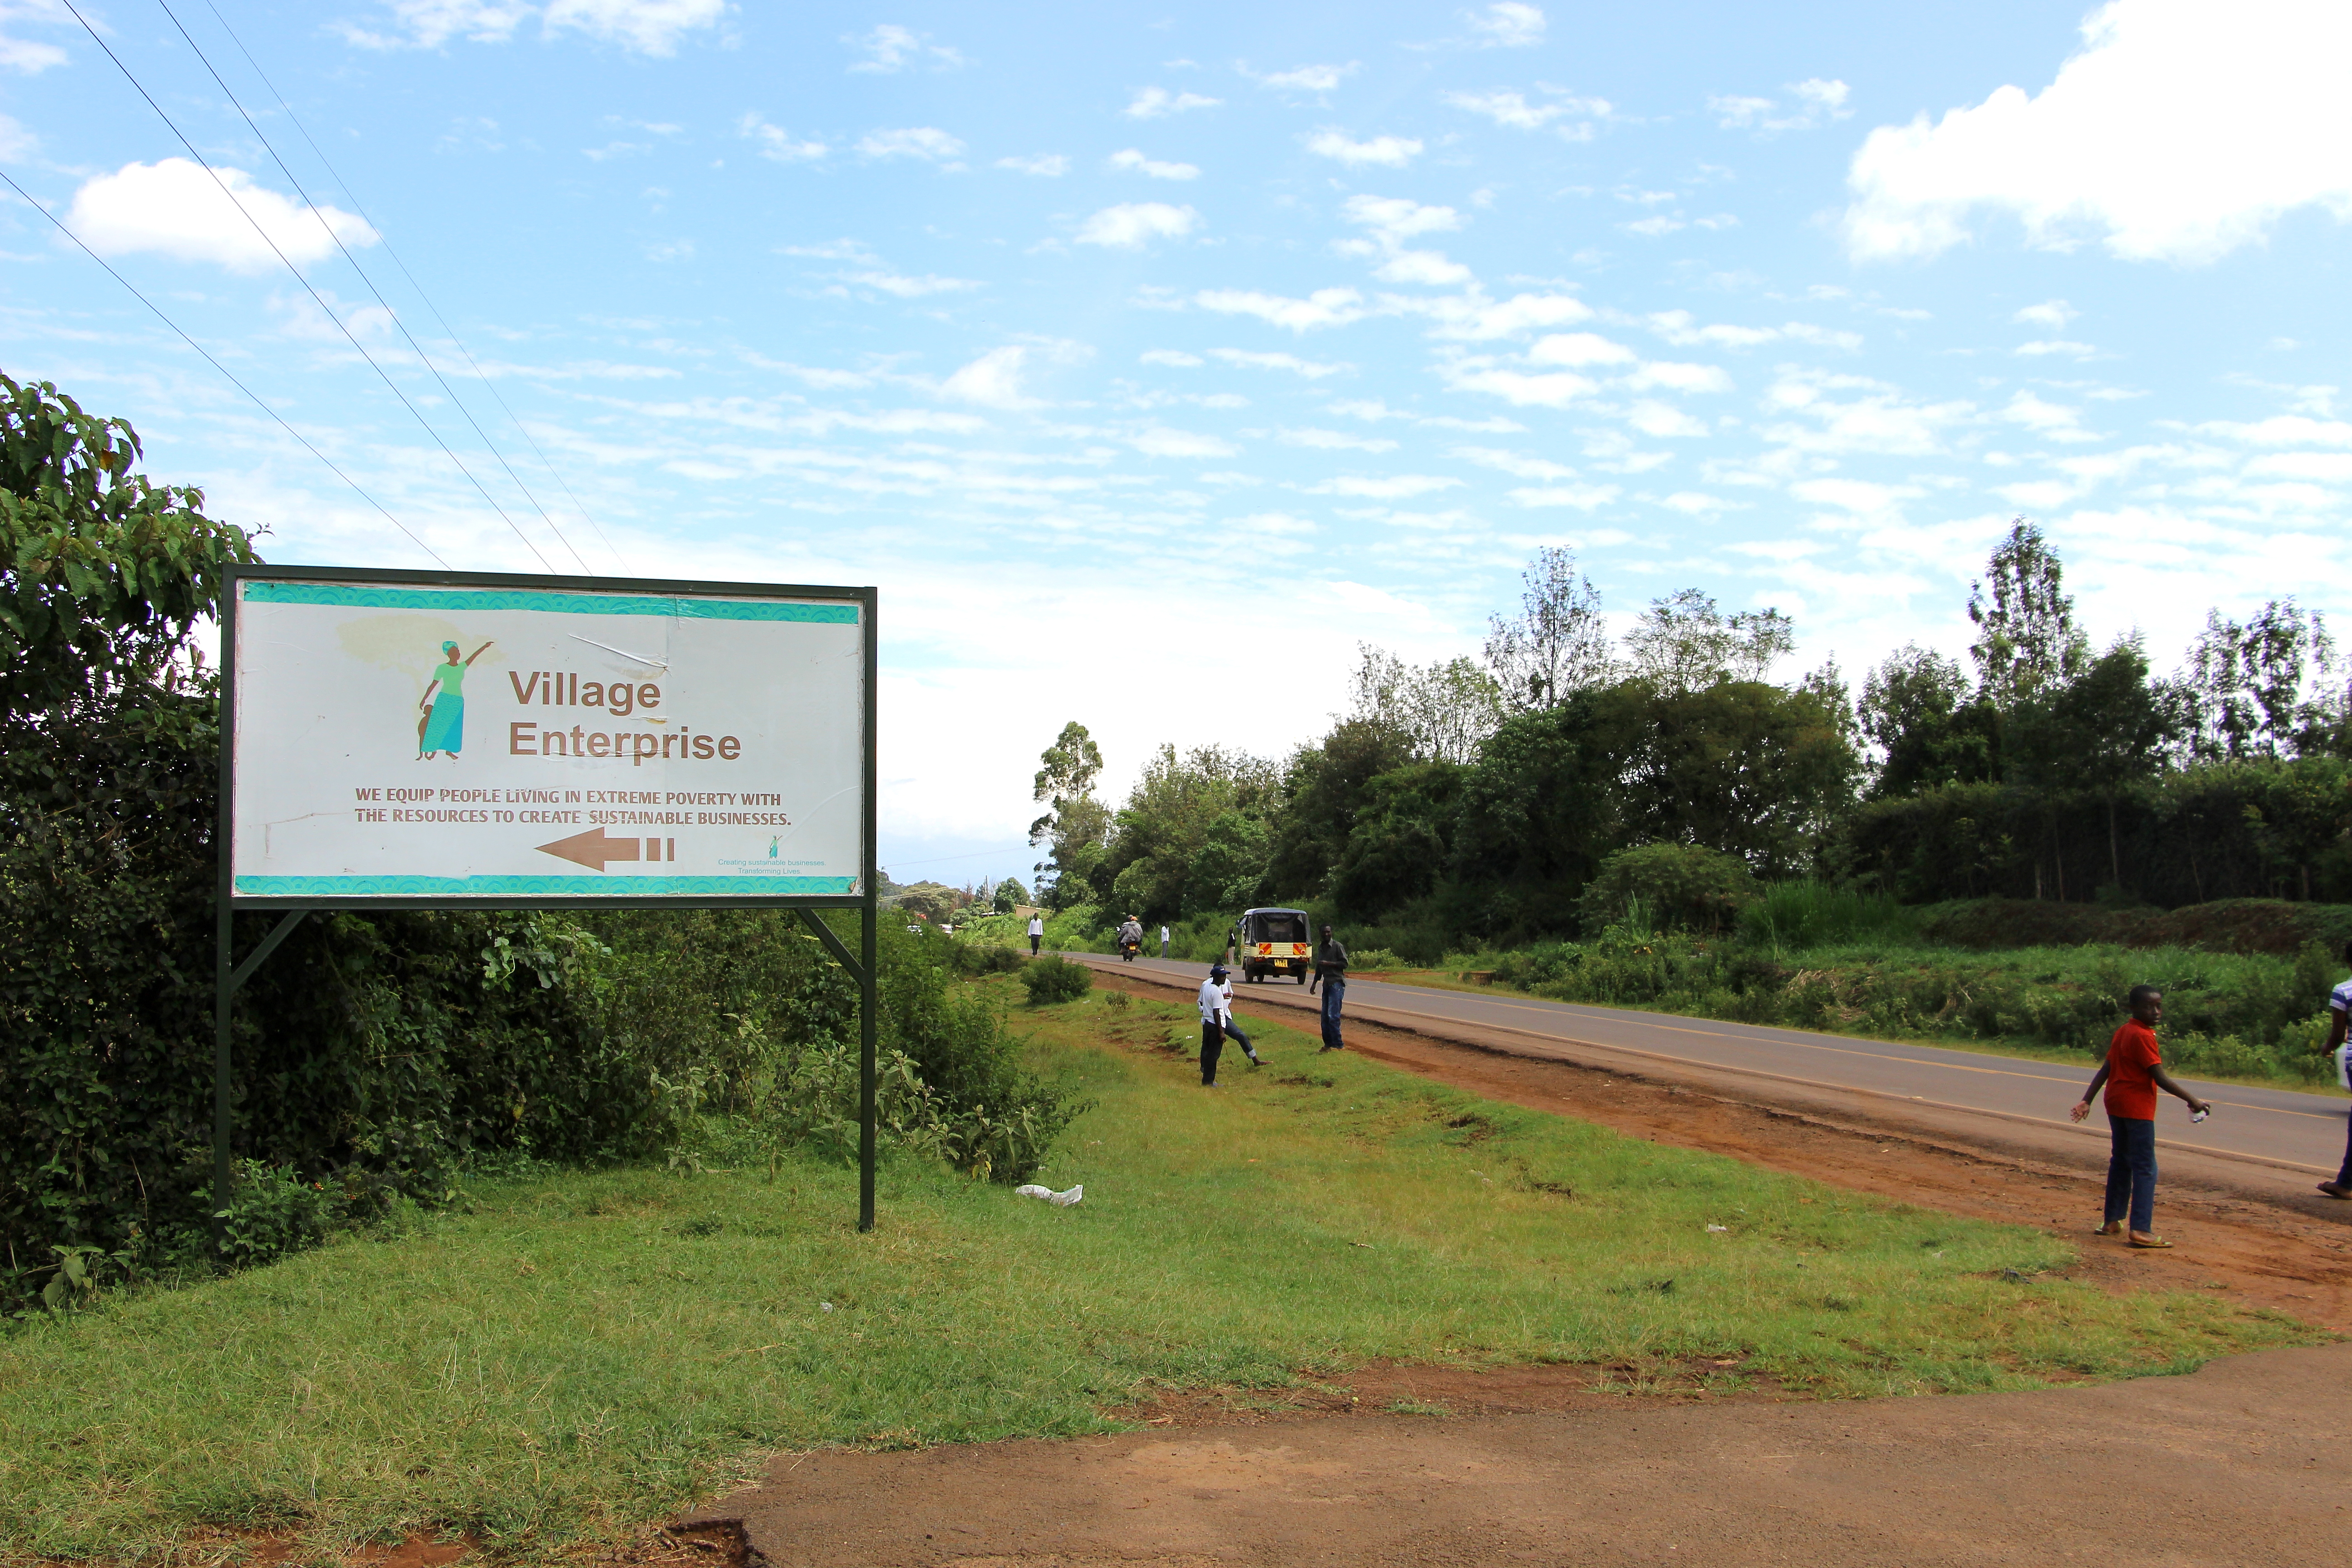 Roadside sign pointing to Village Enterprise Kitale, Kenya, office